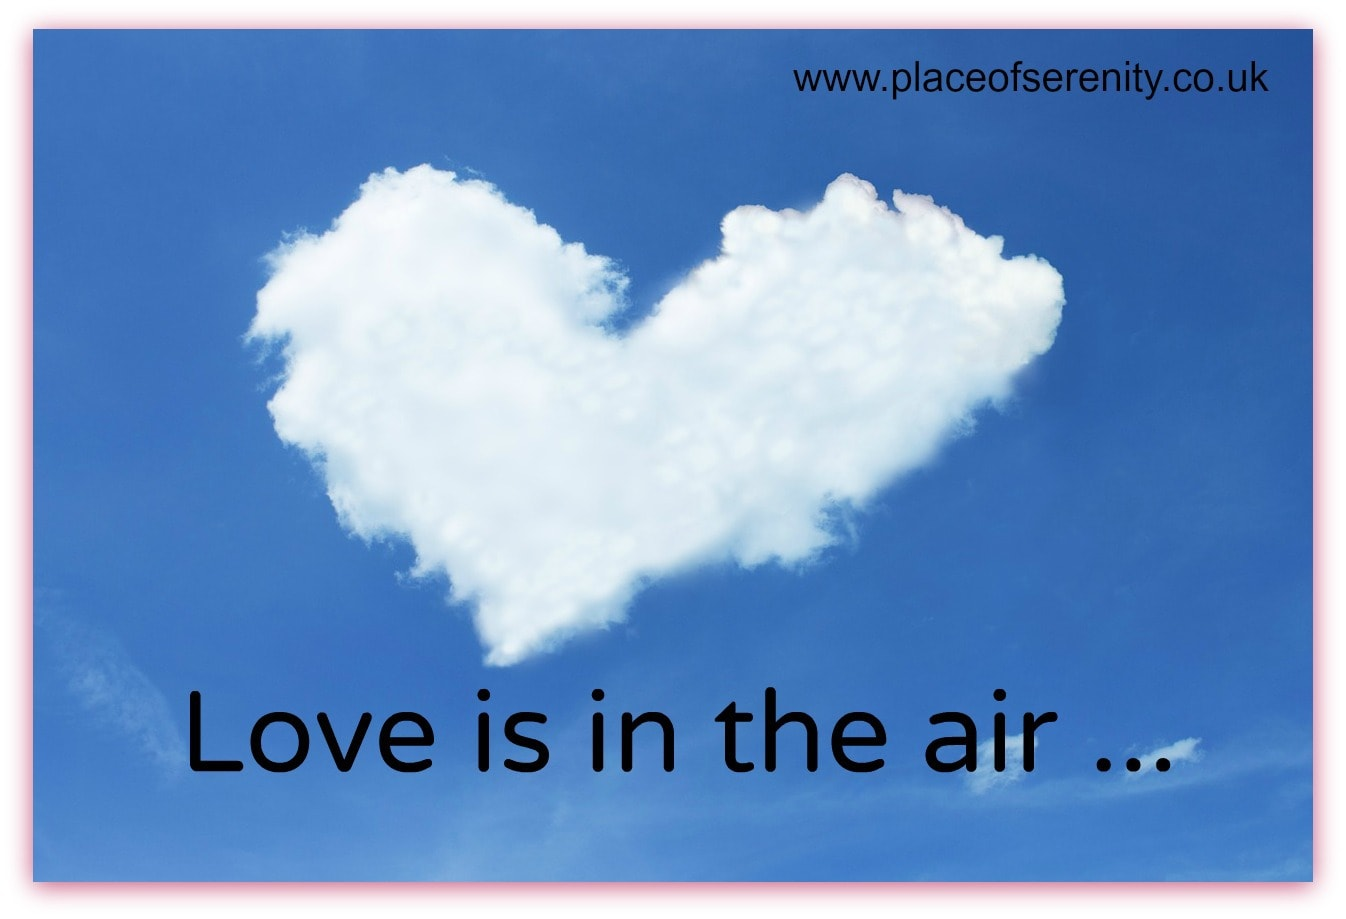 Love is in the air ... | Place of Serenity | Petersfield, Hants